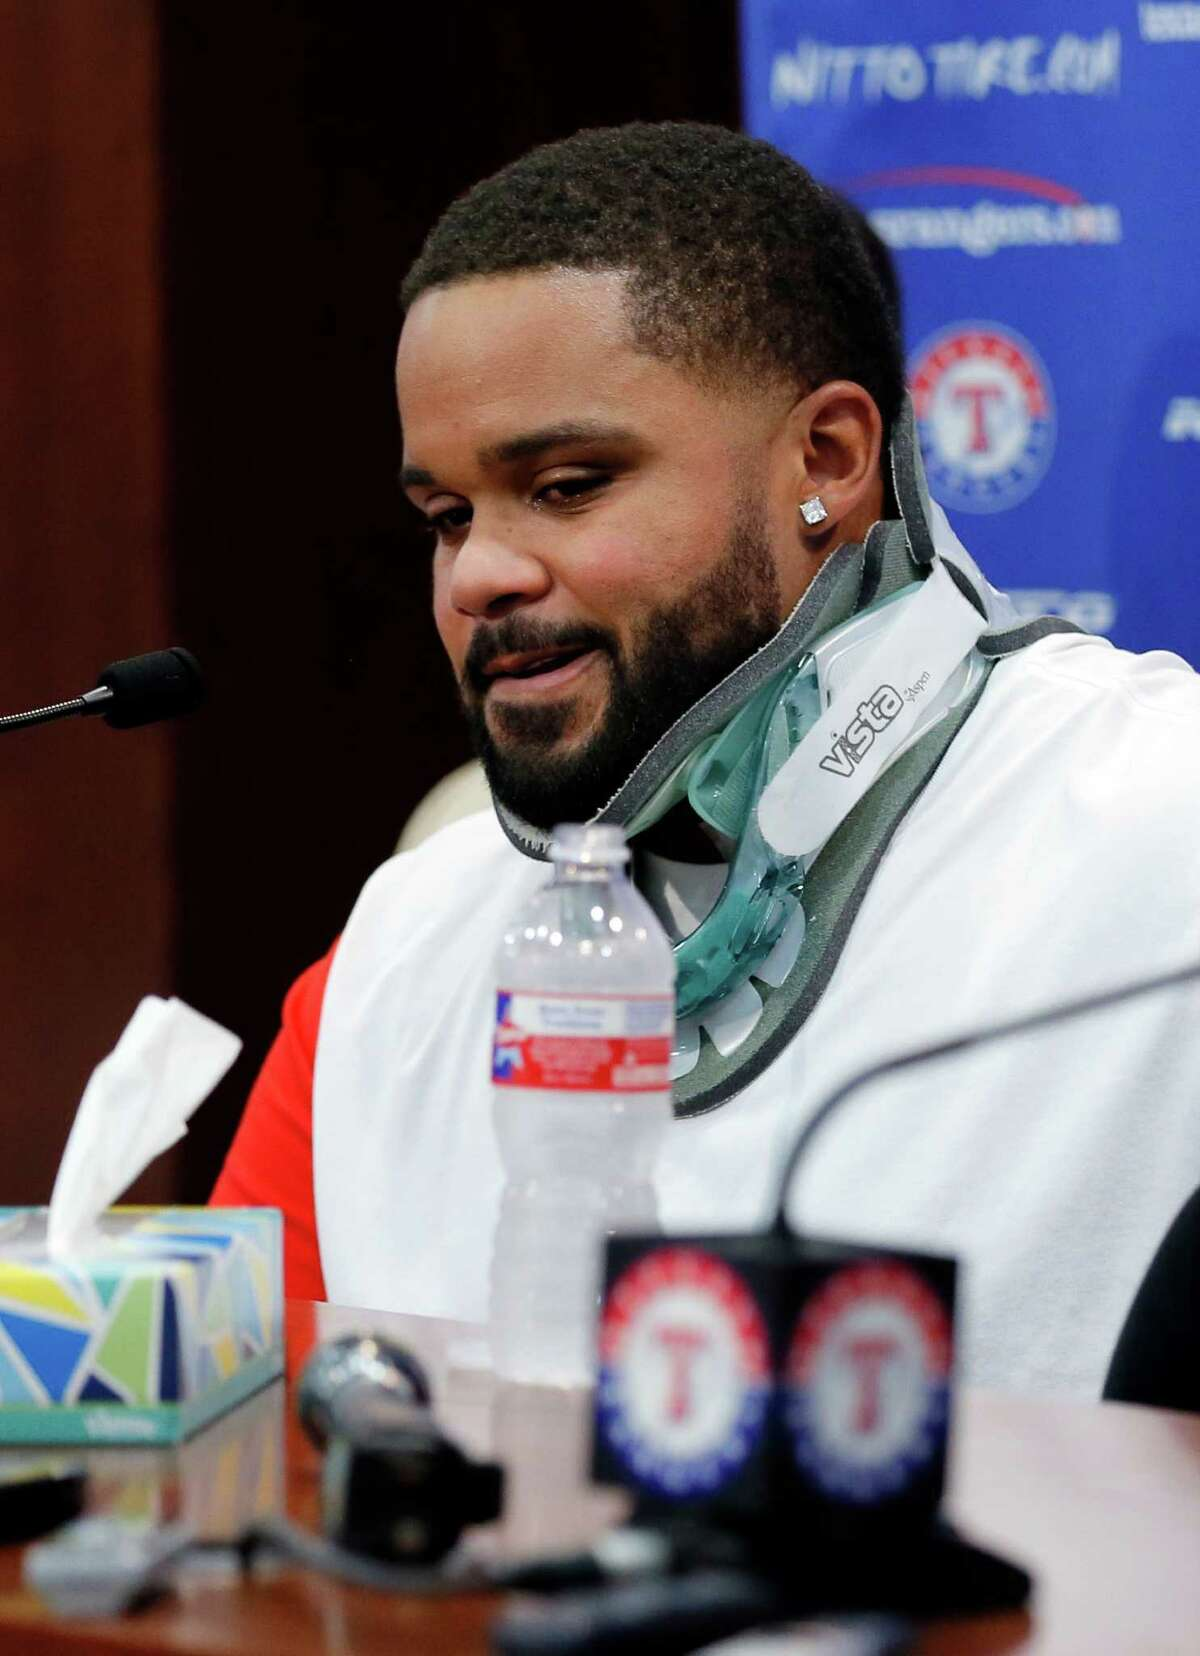 Texas Rangers' Prince Fielder pauses as he makes comments during a news conference before a baseball game against the Colorado Rockies, Wednesday Aug. 10, 2016, in Arlington, Texas. Fielder will not be able to come back after a second neck surgery. The Rangers slugger wept Wednesday as he said health issues were forcing him to end his 12-season major league career. (AP Photo/Tony Gutierrez) ORG XMIT: ARL102